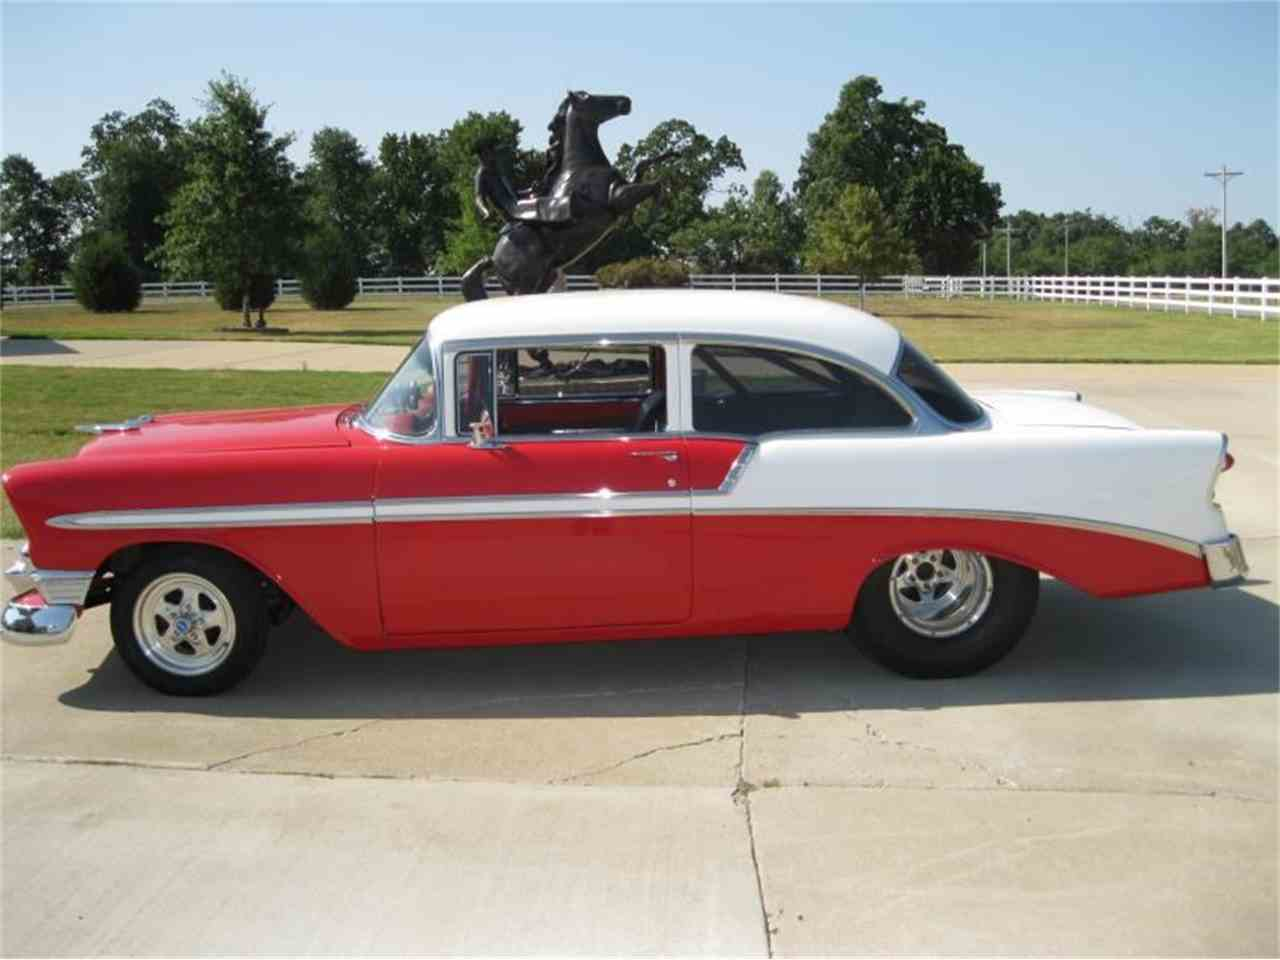 1956 chevrolet bel air for sale classic car liquidators - 1956 Chevrolet Bel Air For Sale Cc 987768